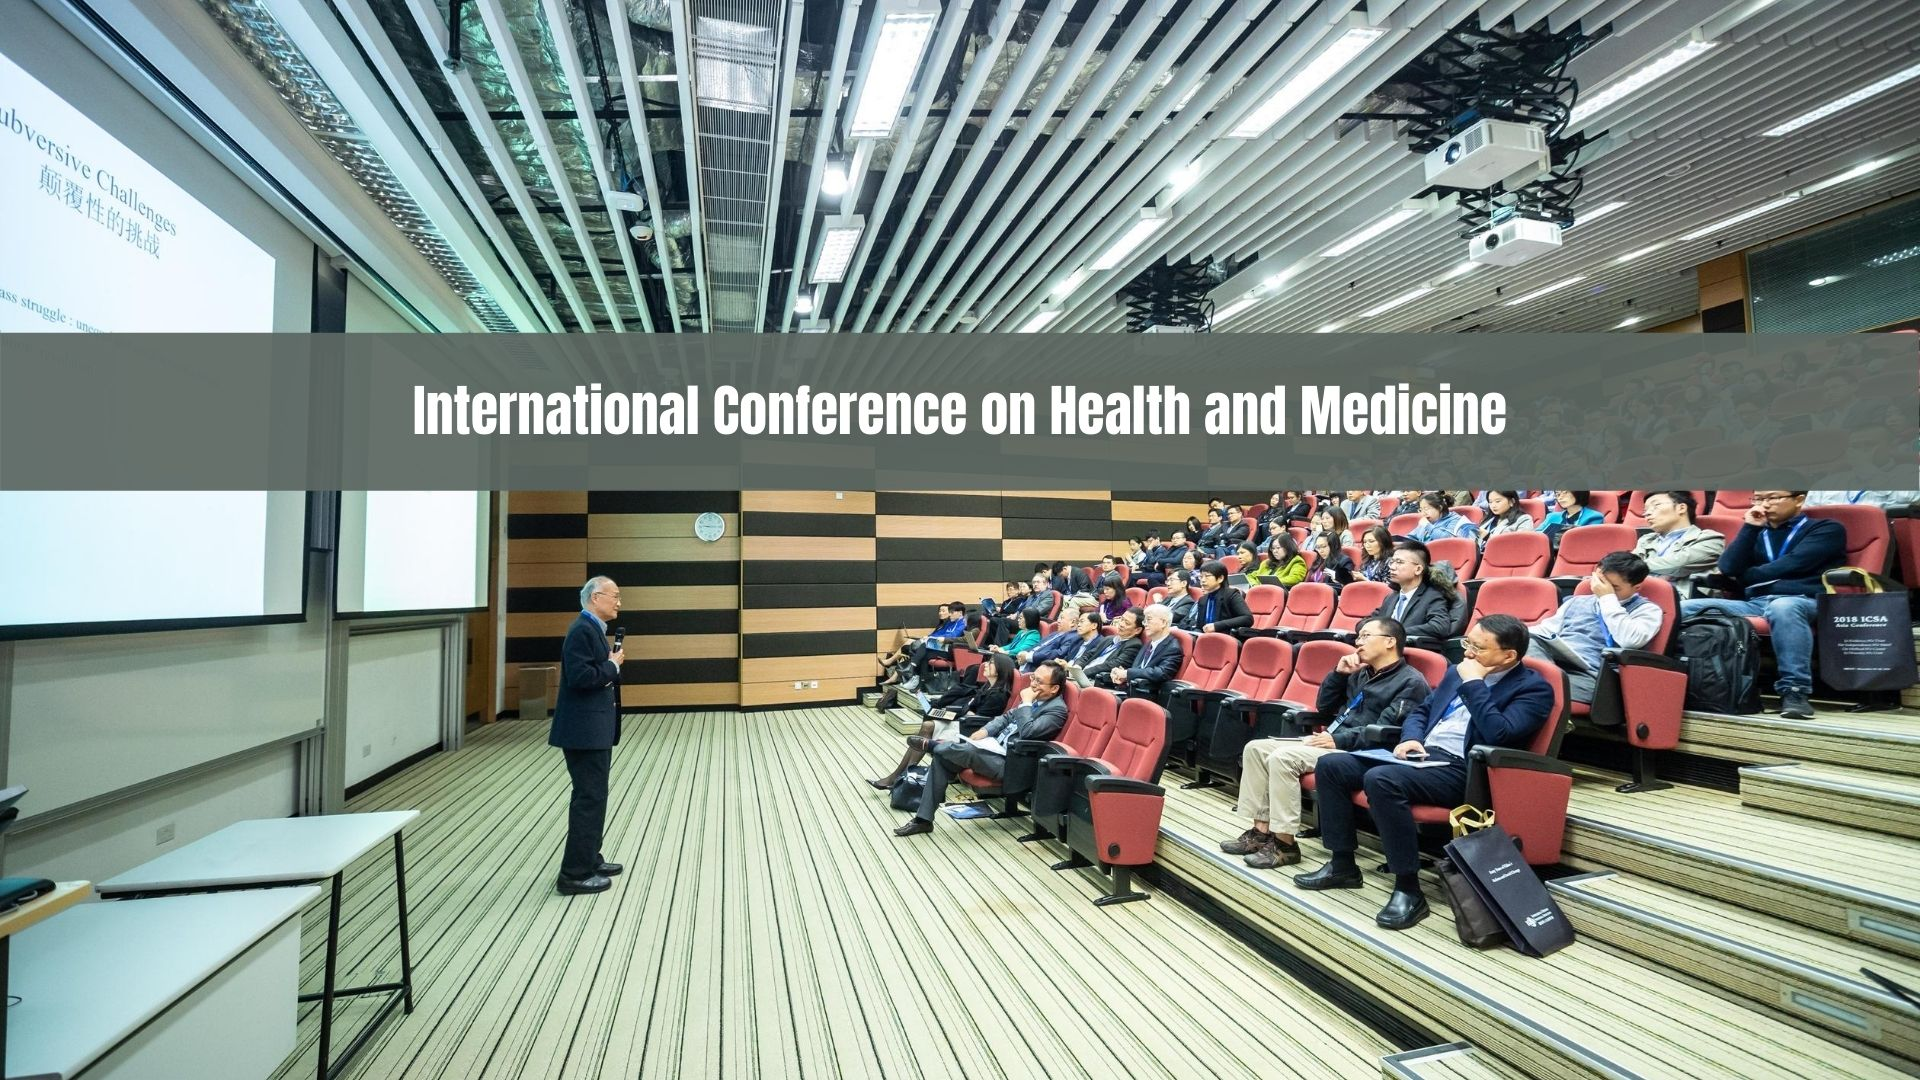 International Conference on Health and Medicine